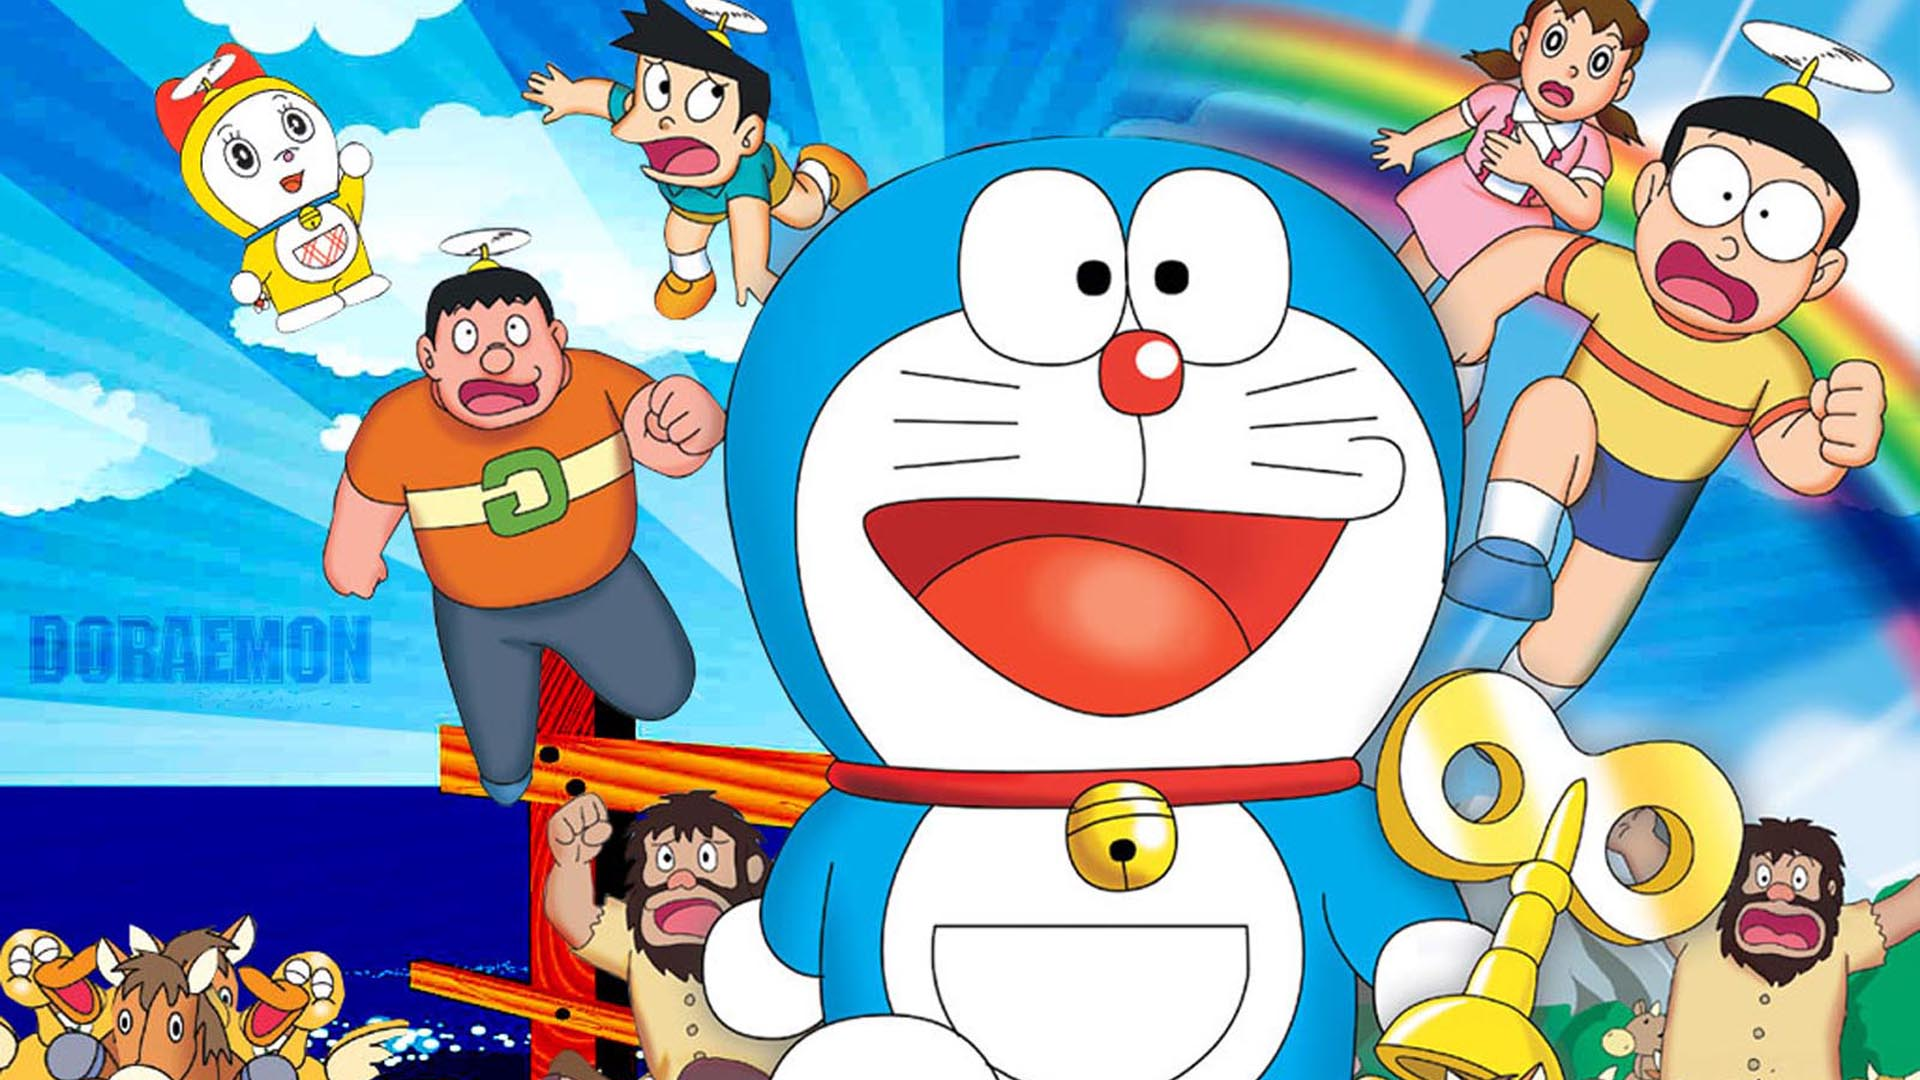 Download Doraemon Wallpaper (11) | Wallz Hut